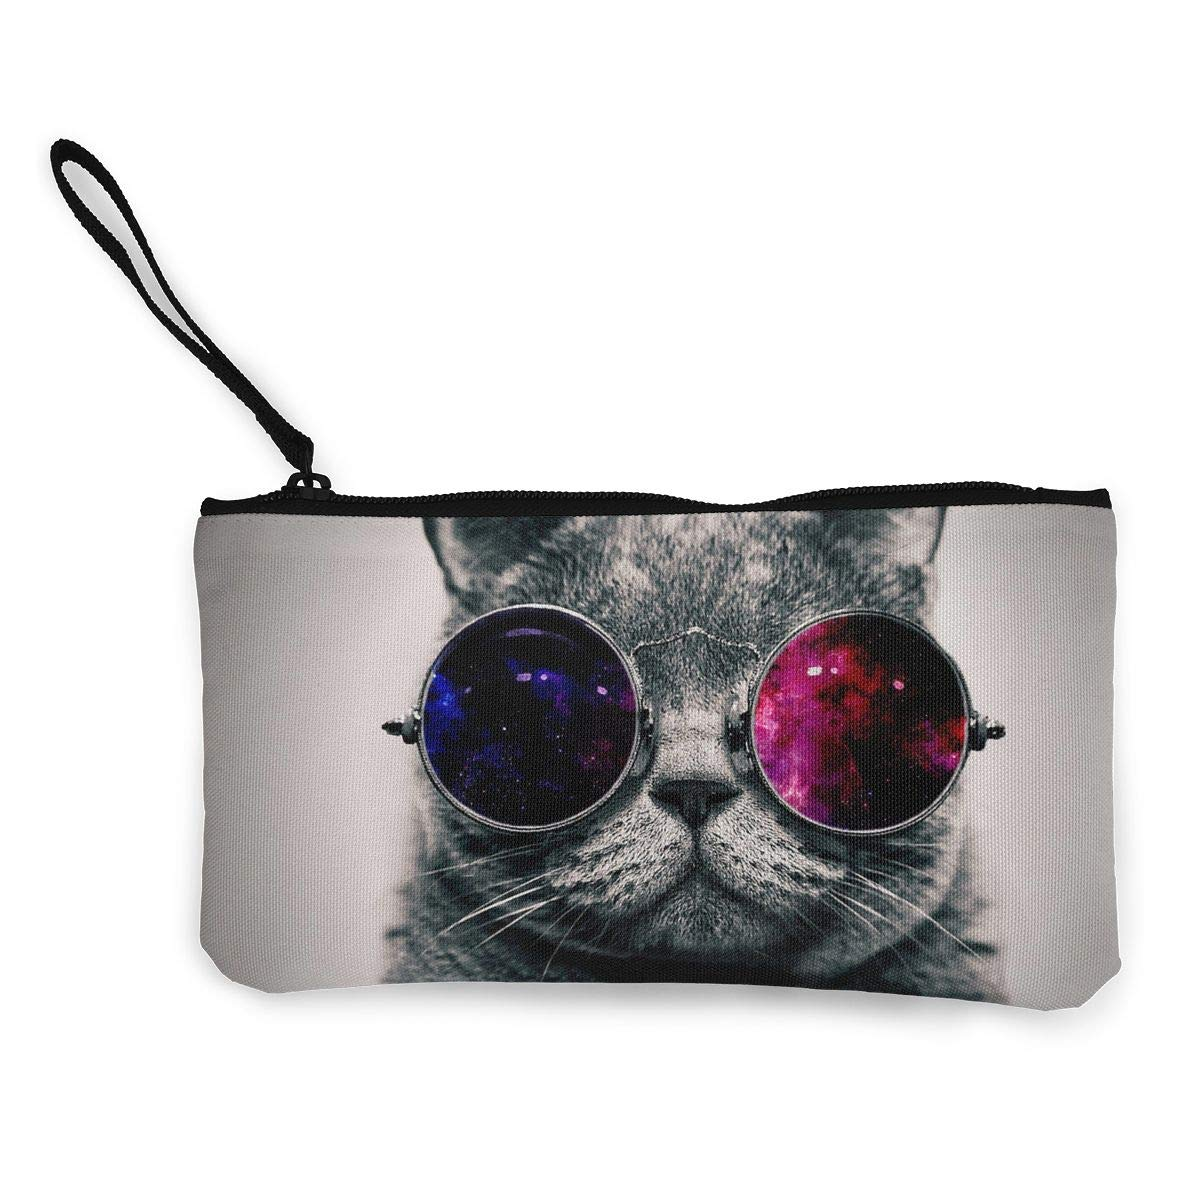 Small Zipper Bag in Gray with Cats Wearing Glasses Small Zipper Coin Purse Little Zipper Pouch